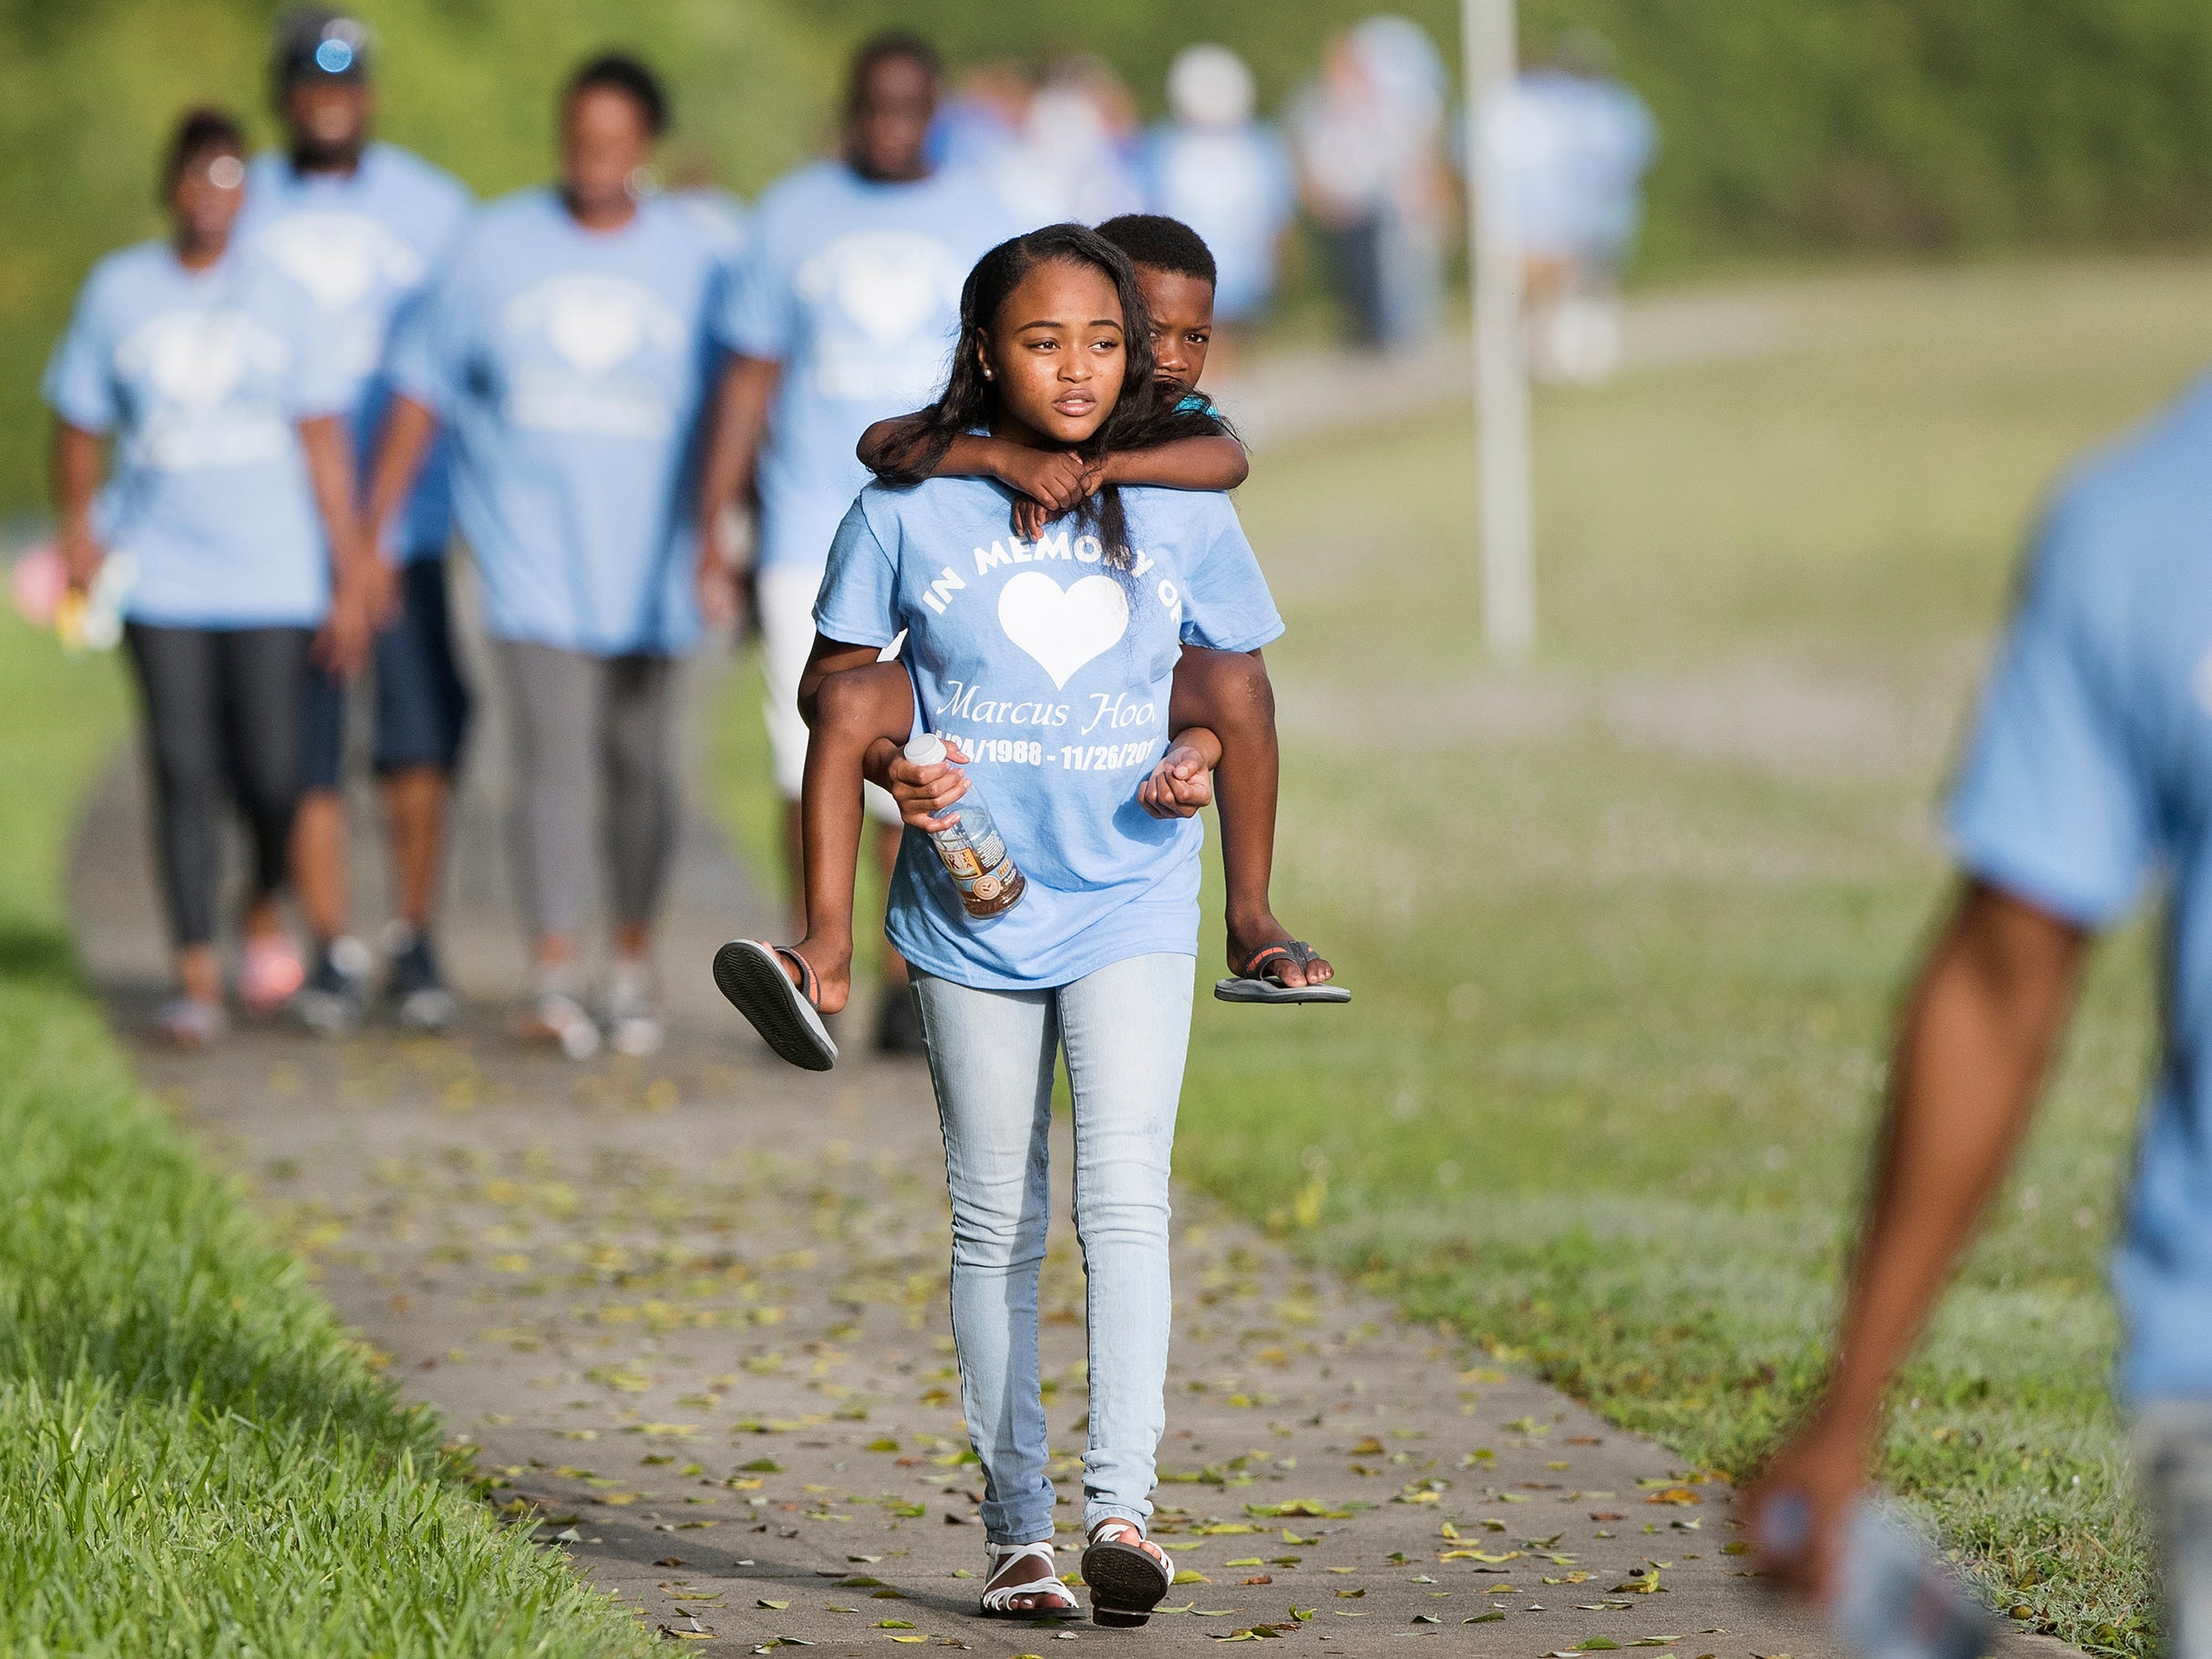 Oshyra Marchman, 18, carries her cousin, Bryson Royal, 5, during a memorial walk recently for Marcus Hood, who was killed two years ago in a shooting at the Gulf Coast Town Center in San Carlos Park. More than 35 of Hood's family members and friends walked four miles from the center to Cypress View Drive where emergency personnel found Hood.